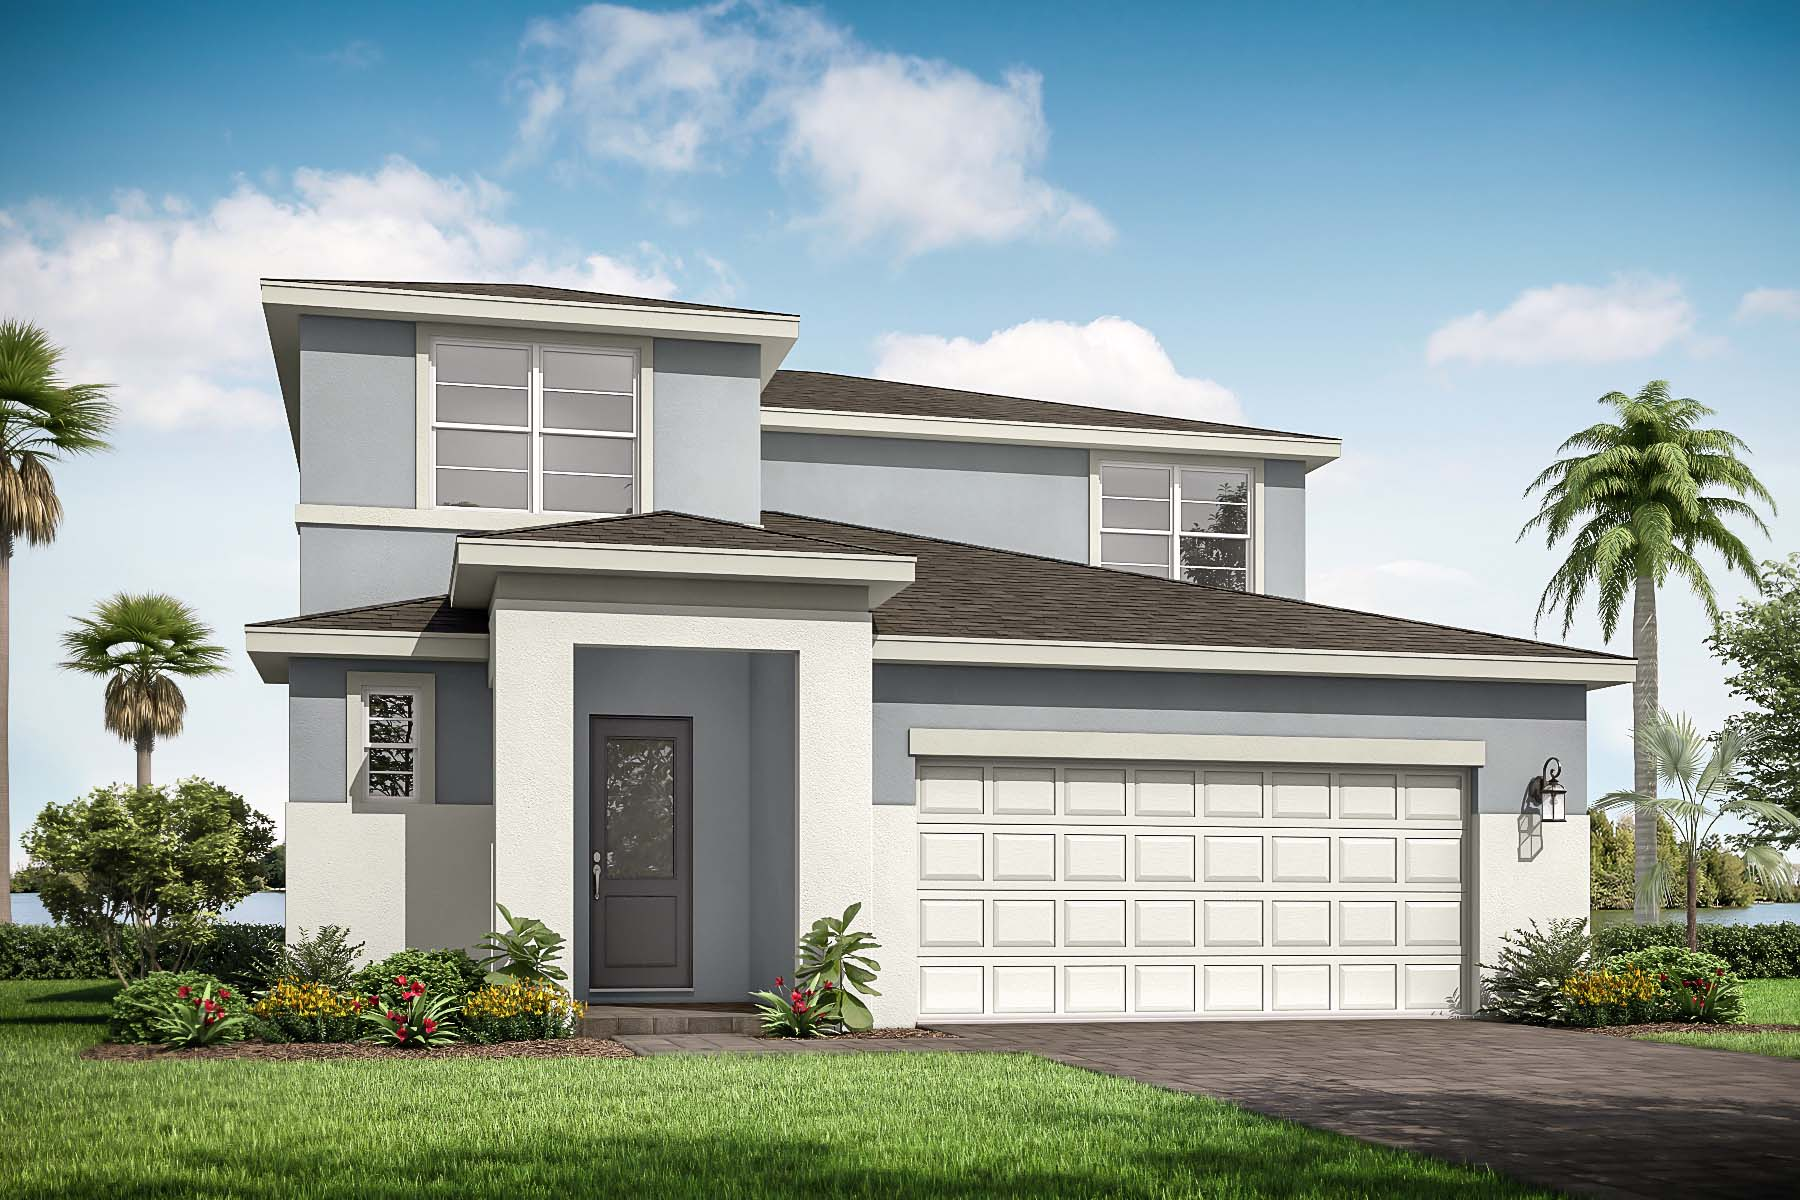 Danbury Plan Elevation Front Danbury Transitional at Tradition - Manderlie in Port St. Lucie Florida by Mattamy Homes